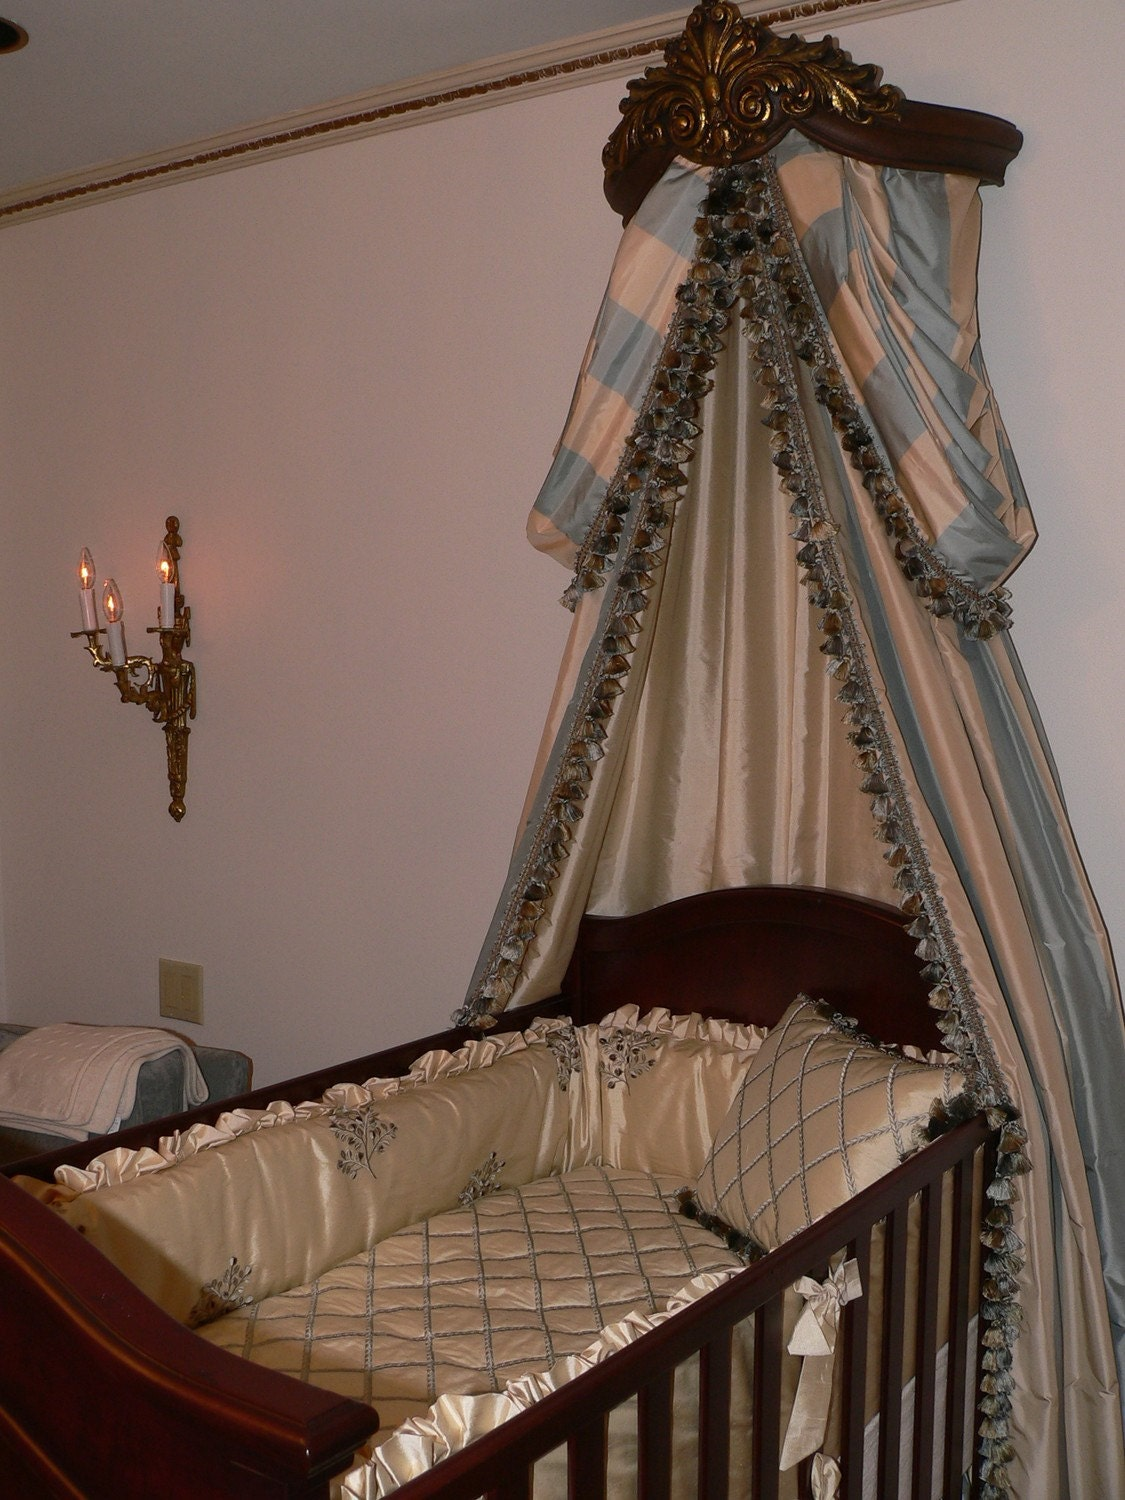 Elegant Canopy With Swags N Drapes Over A Luxury Custom Silk